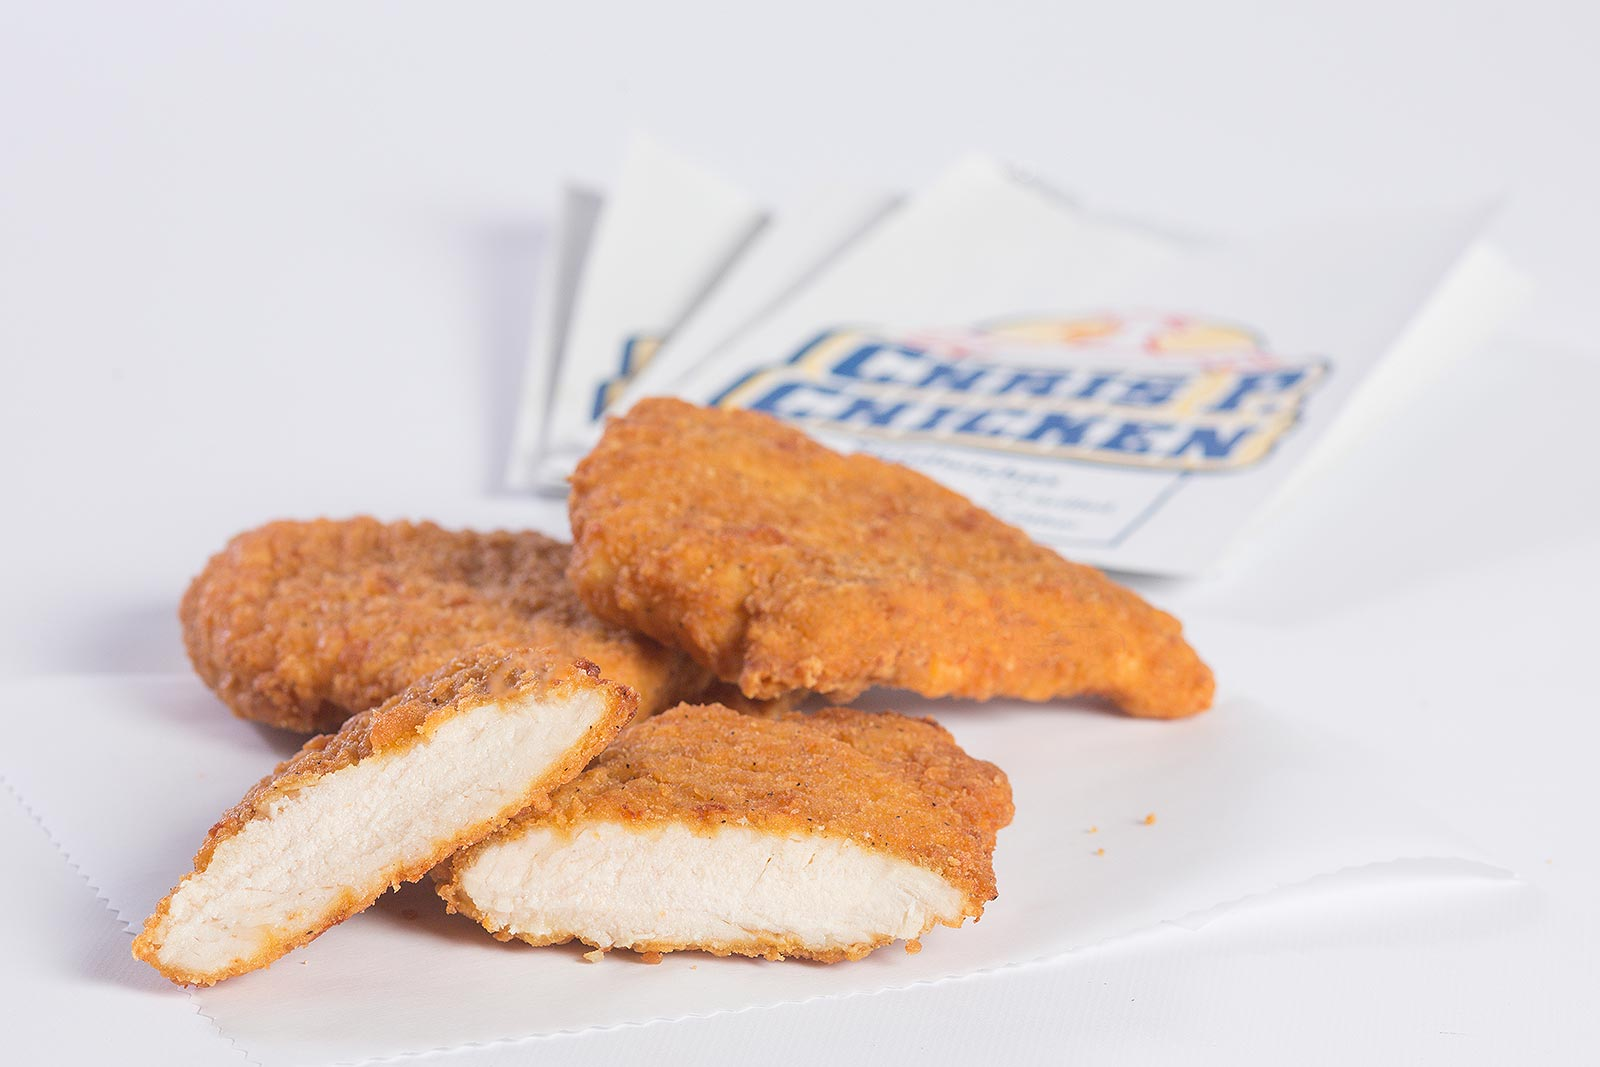 Chris P. Chicken Fillets w/ Bags image